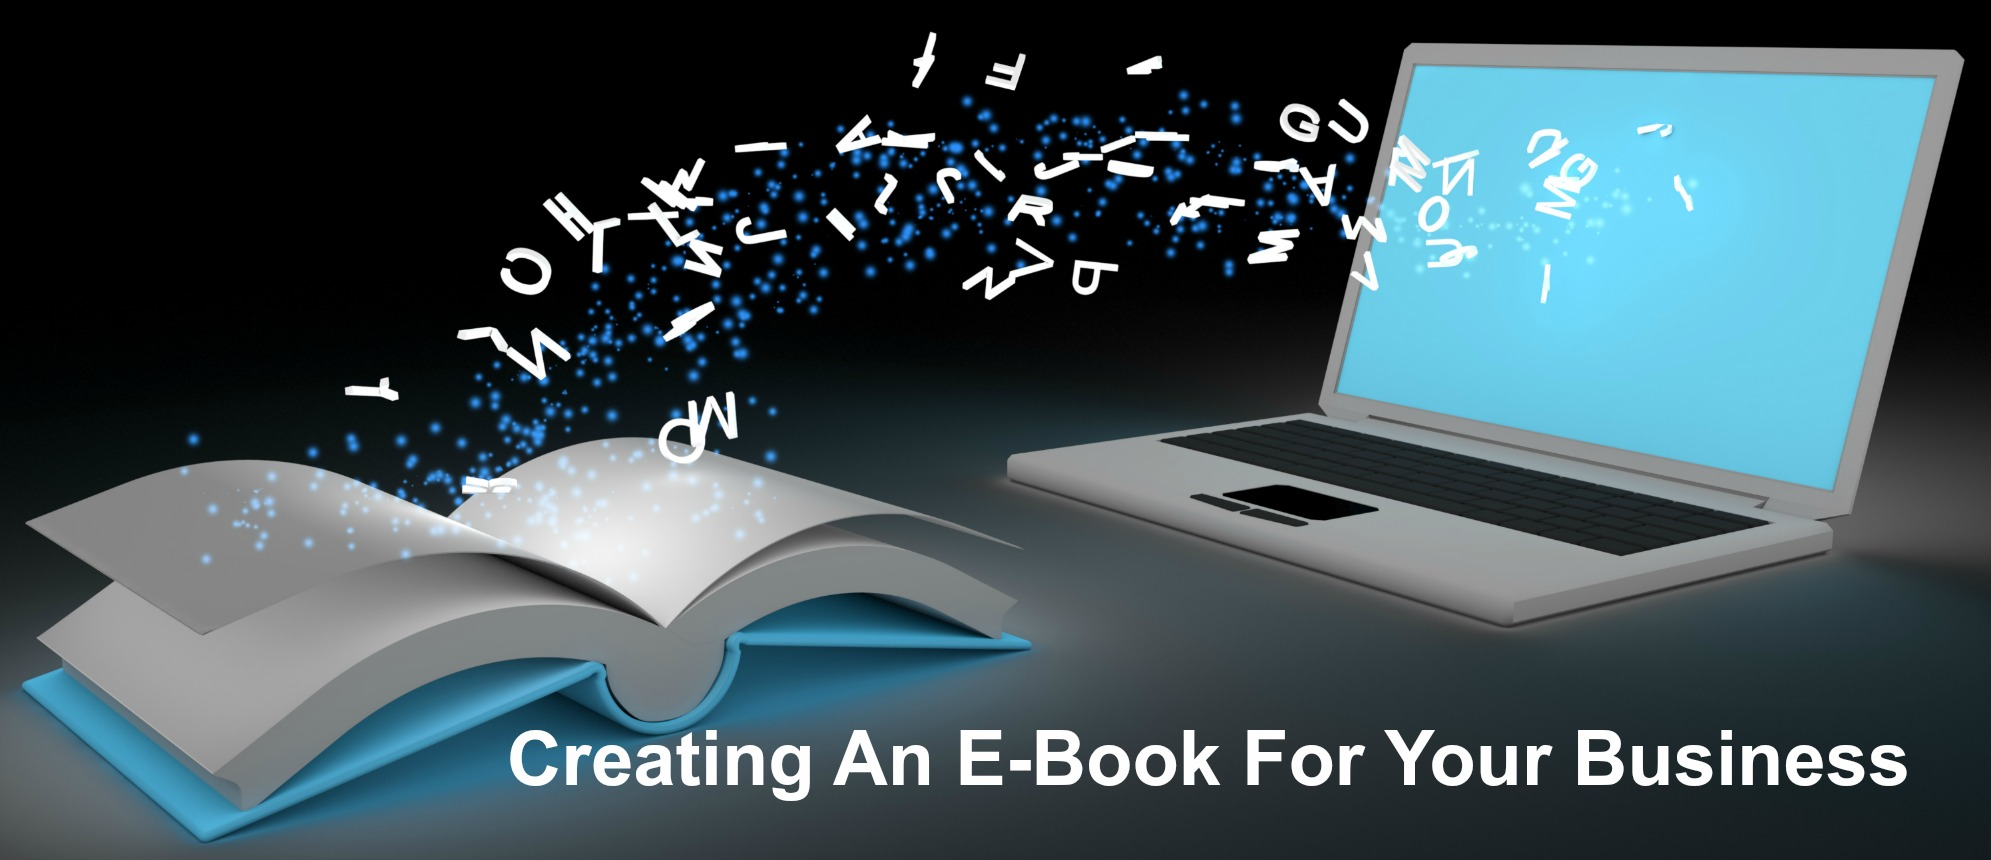 E-Book Creation